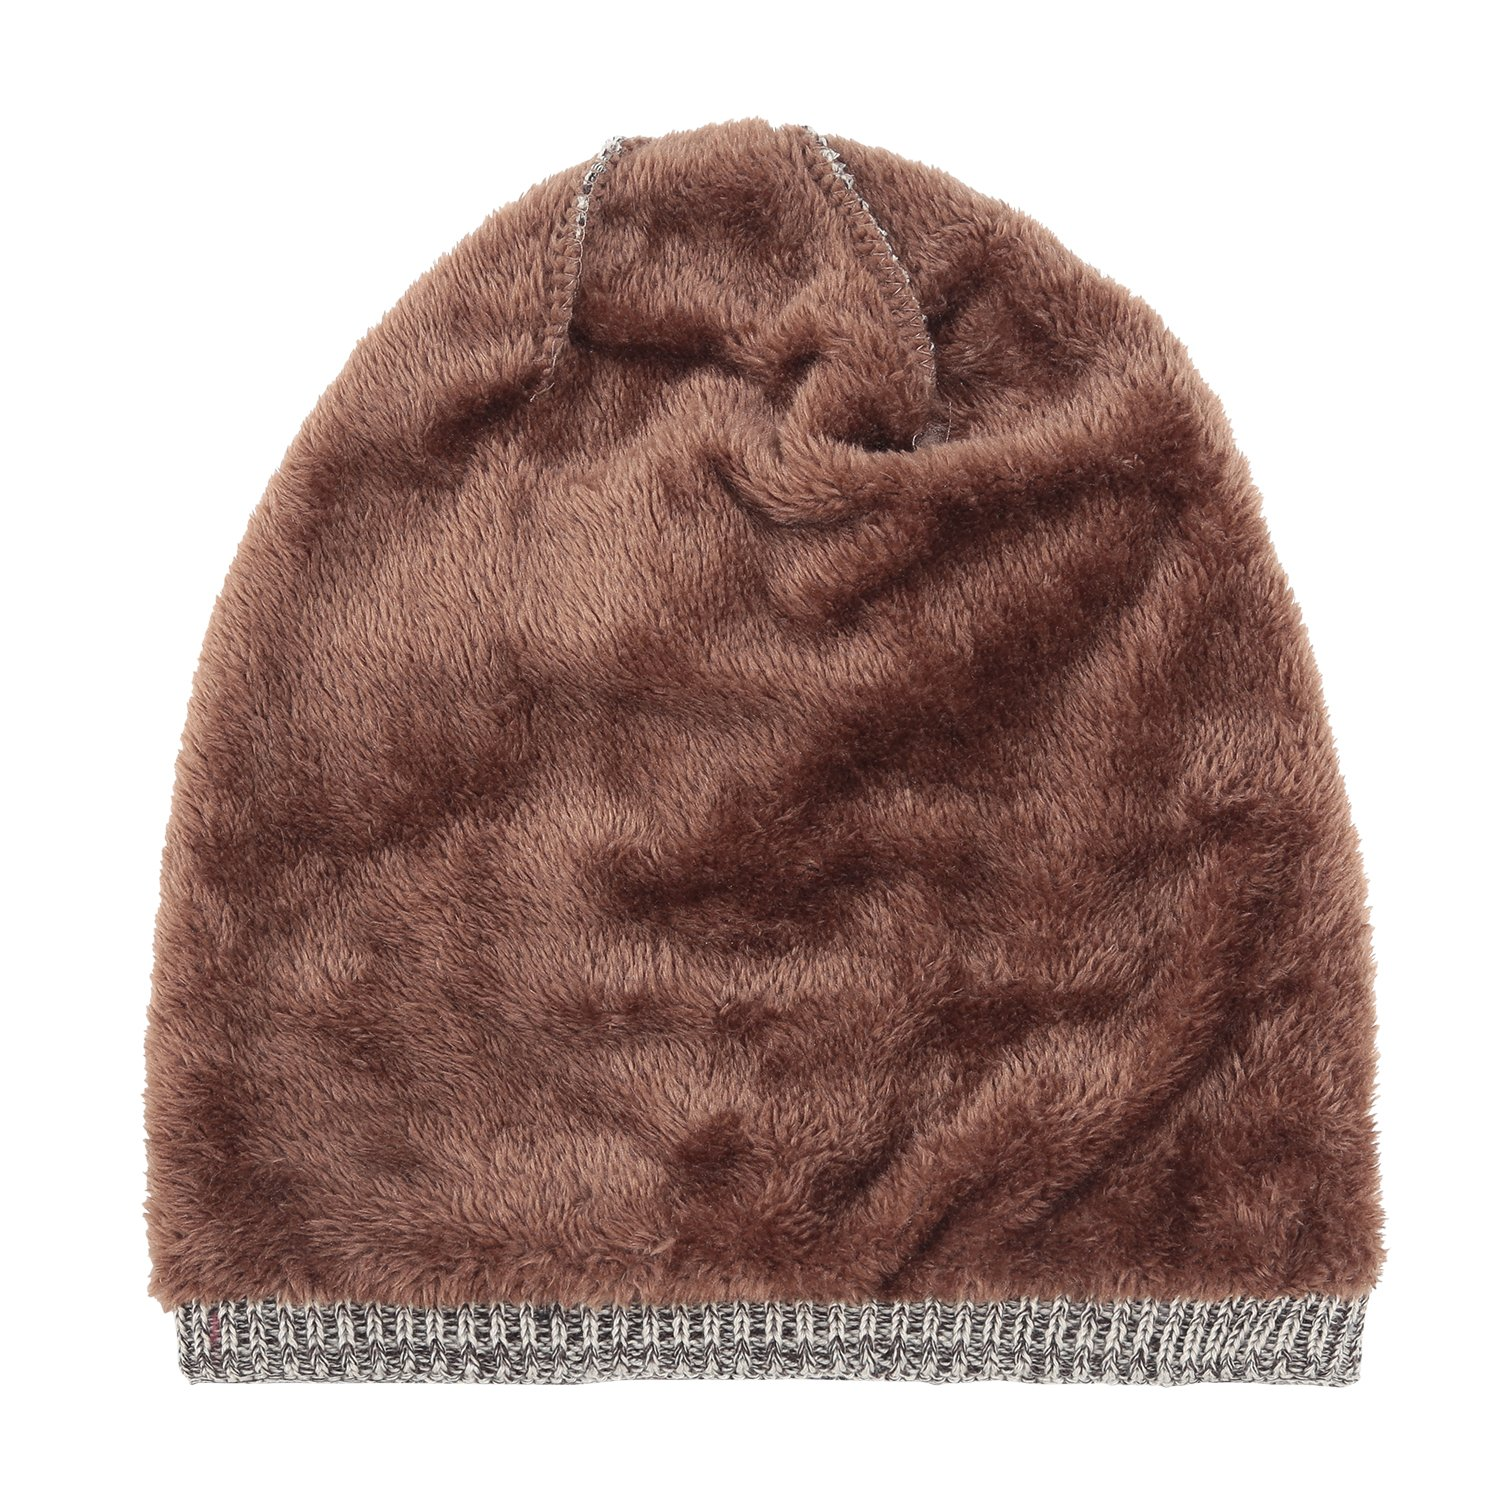 b014297df9e REDESS Beanie Hat for Men and Women Winter Warm Hats Knit Slouchy Thick  Skull Cap(2 Packs Black Brown) - nmfk6   Skullies   Beanies   Clothing